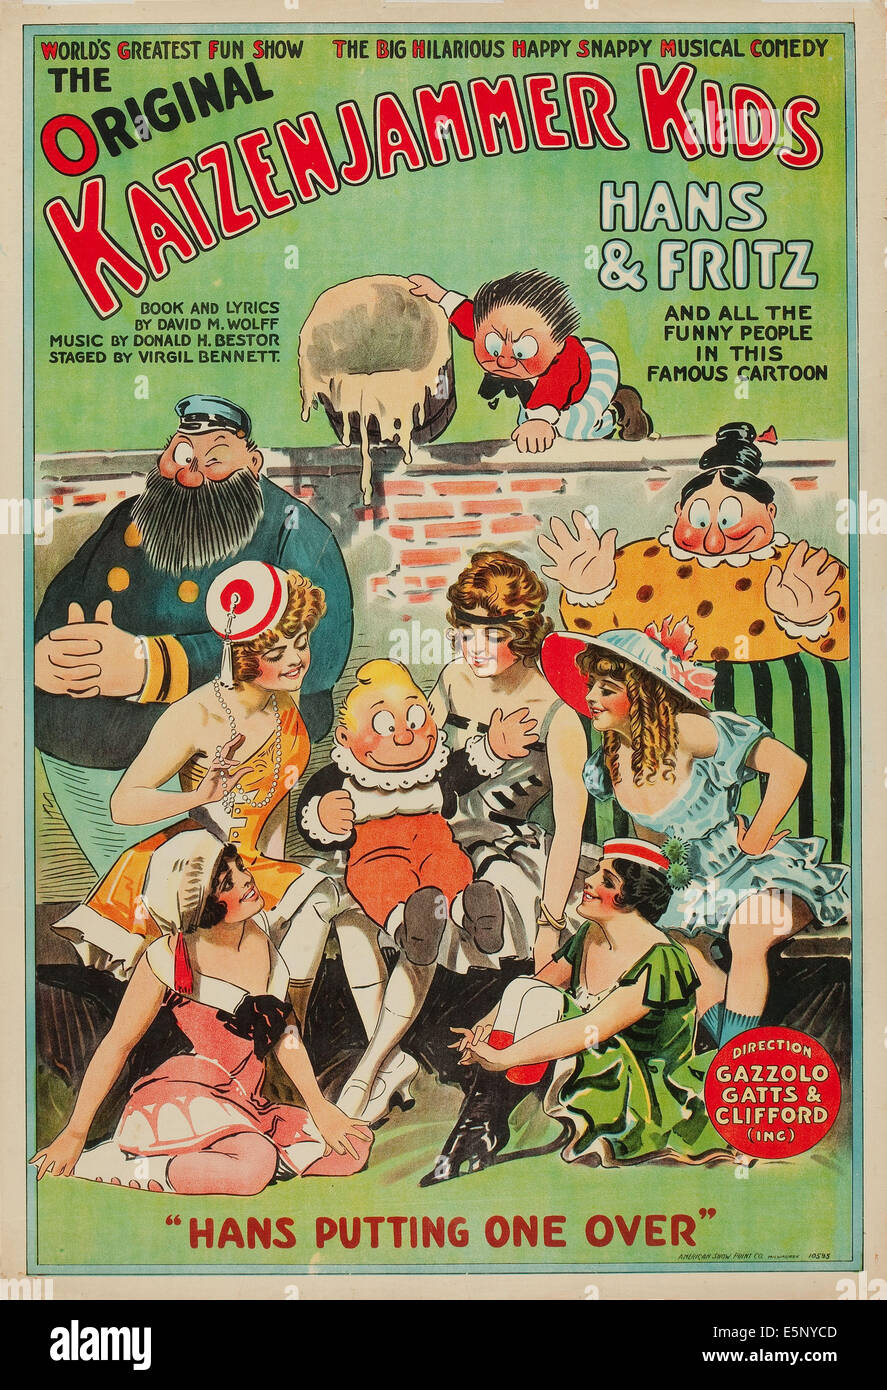 THE KATZENJAMMER KIDS, clockwise from left: The Captain, Fritz Katzenjammer, Mrs. Katzenjammer, Hans Katzenjammer - Stock Image